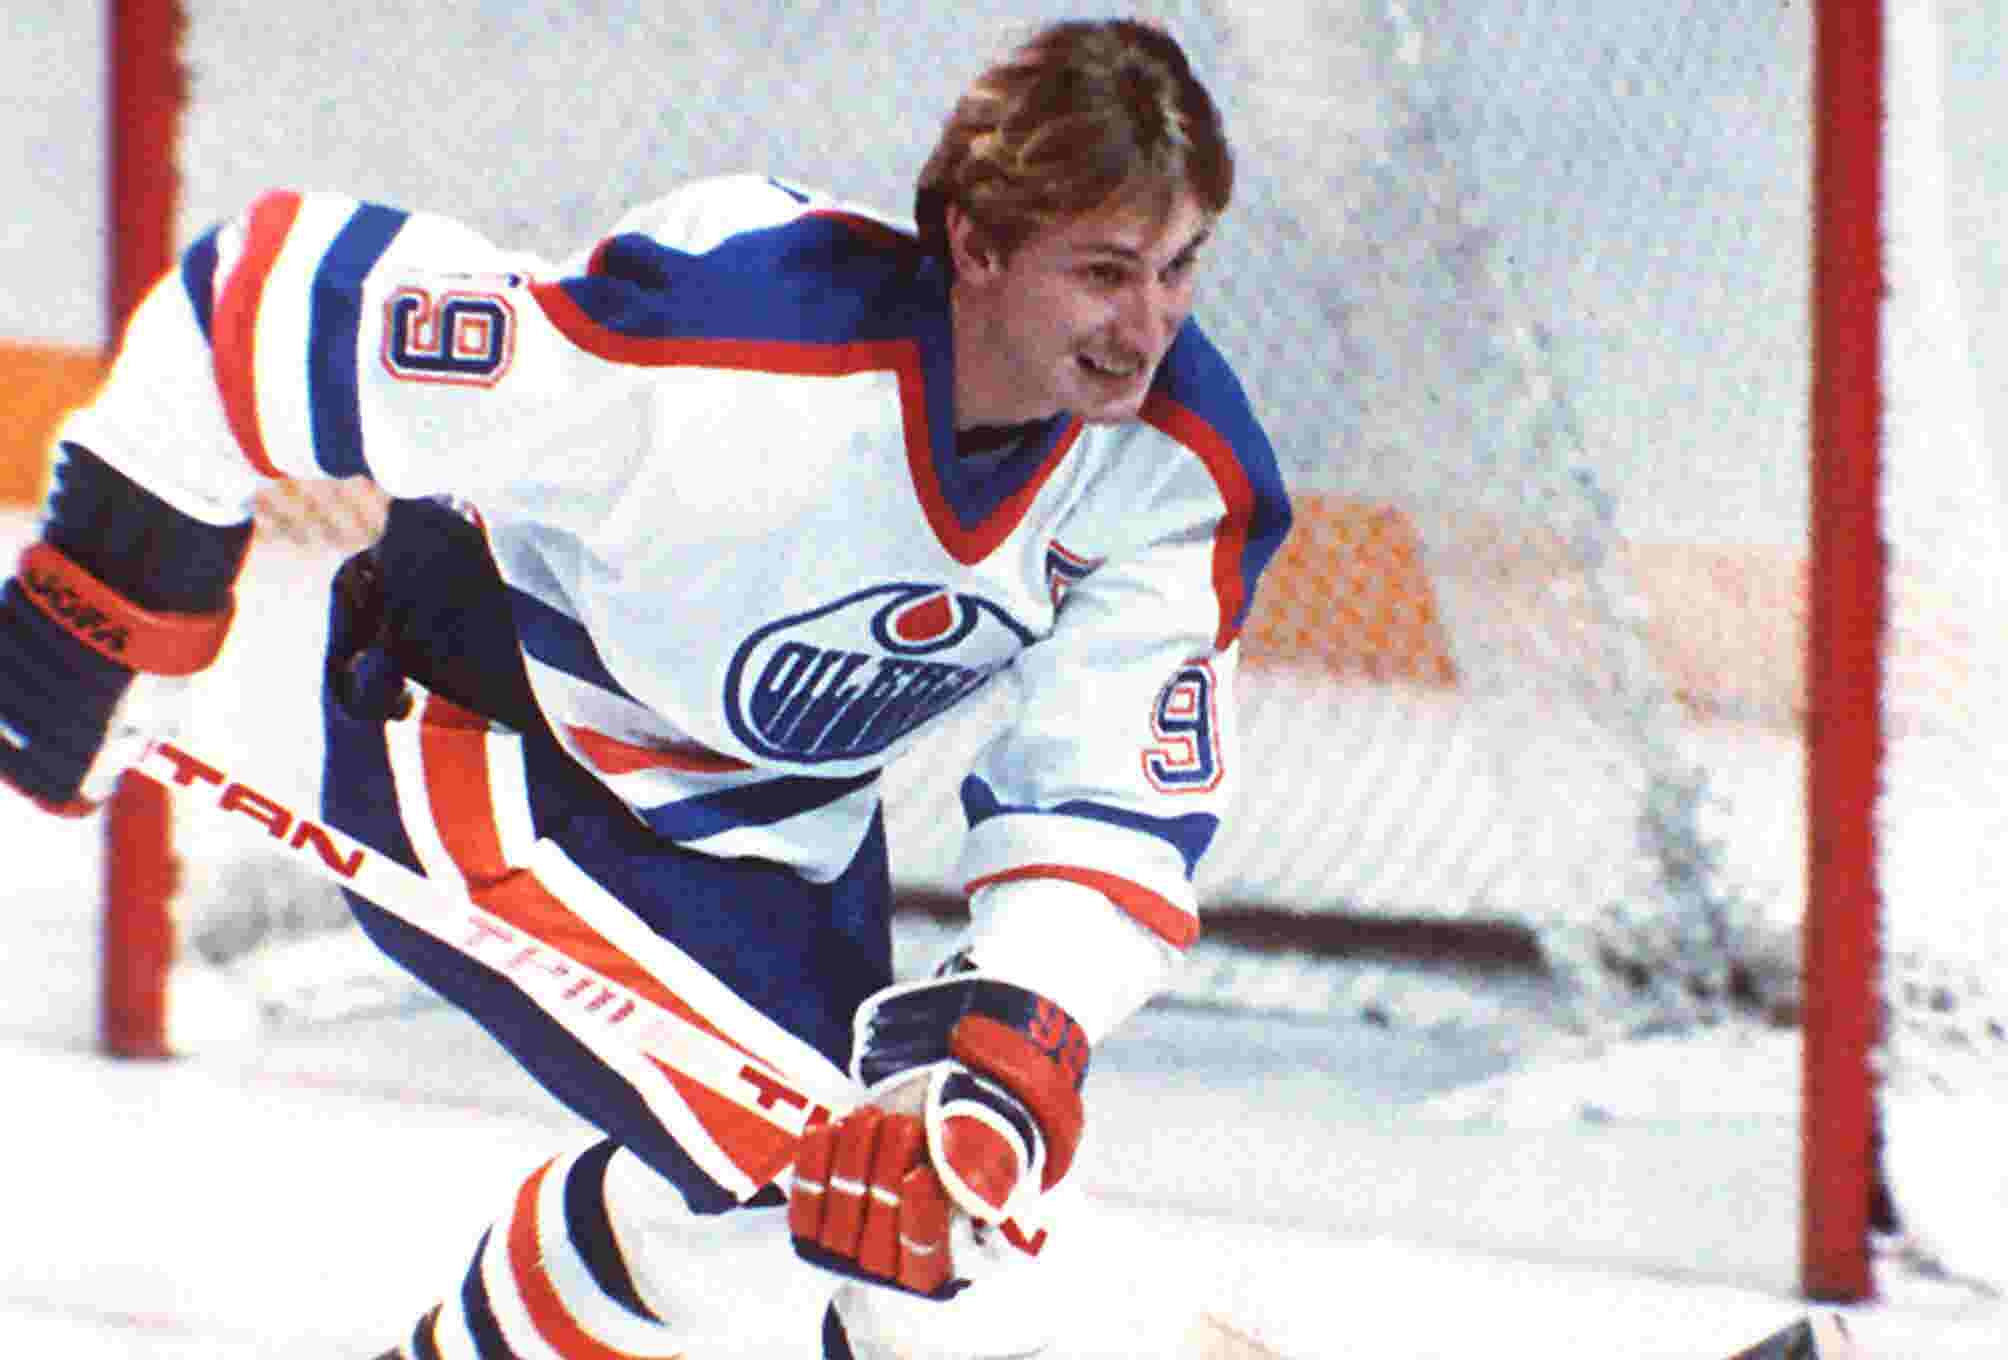 Did Gretzky play in NHL's 'golden era'? The Great One answers that